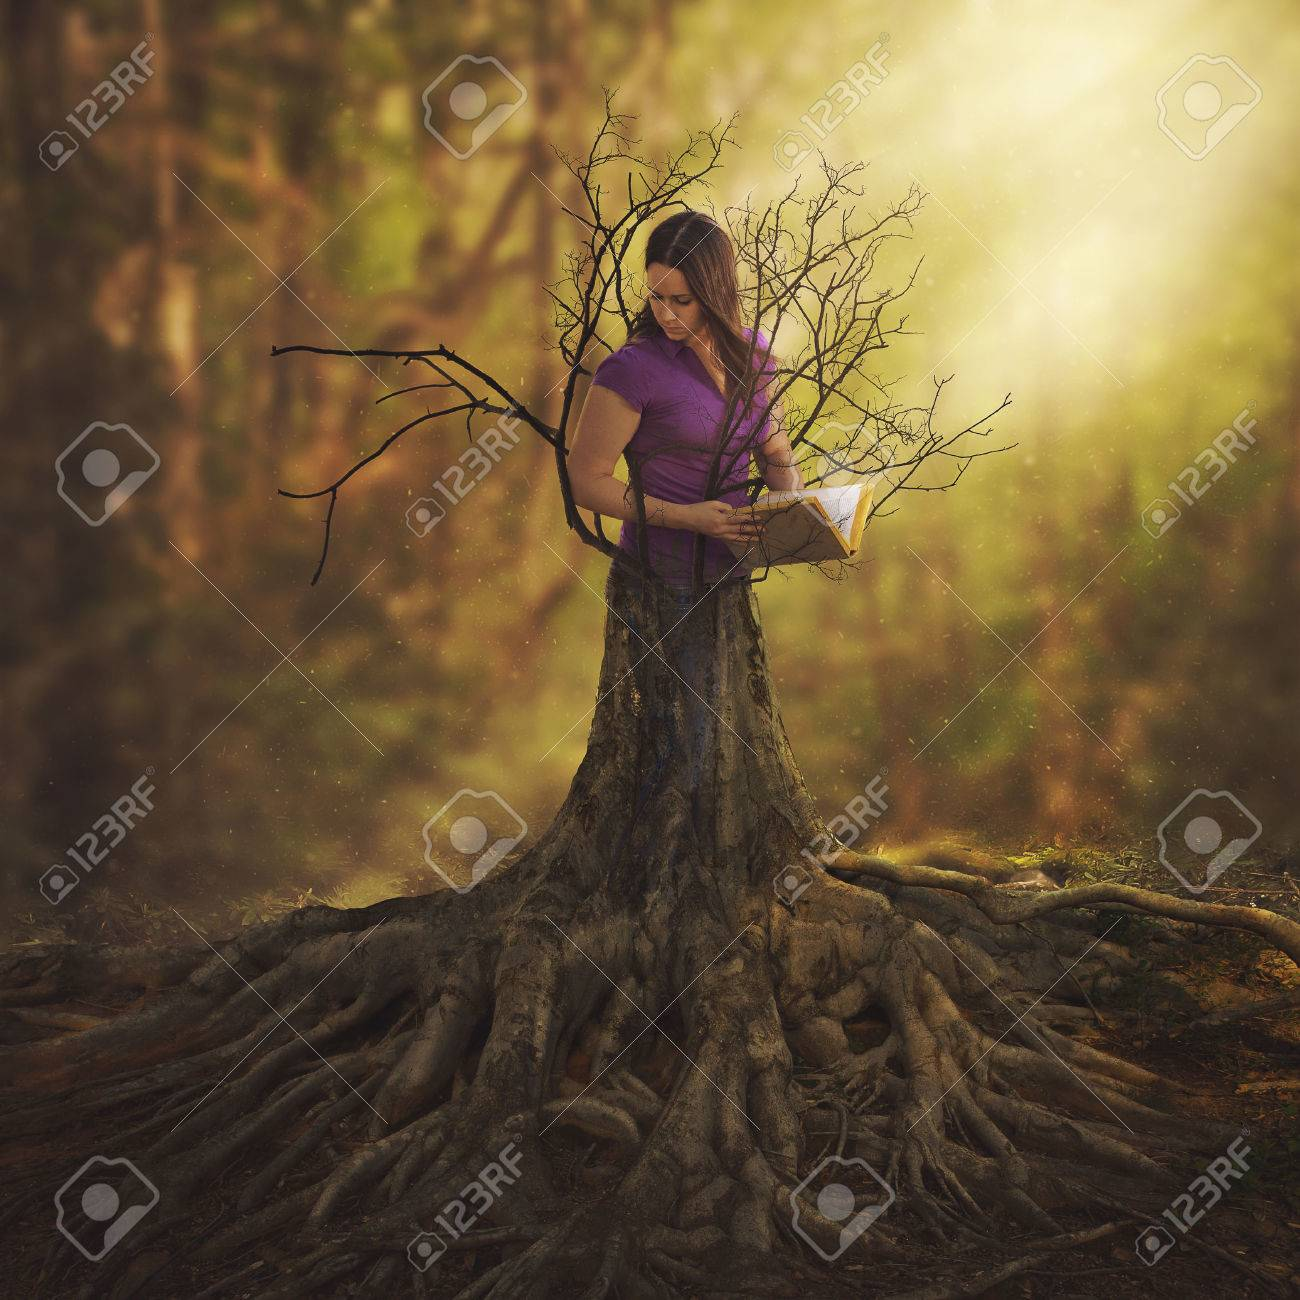 A woman reading a book and turning into a tree. - 57162733